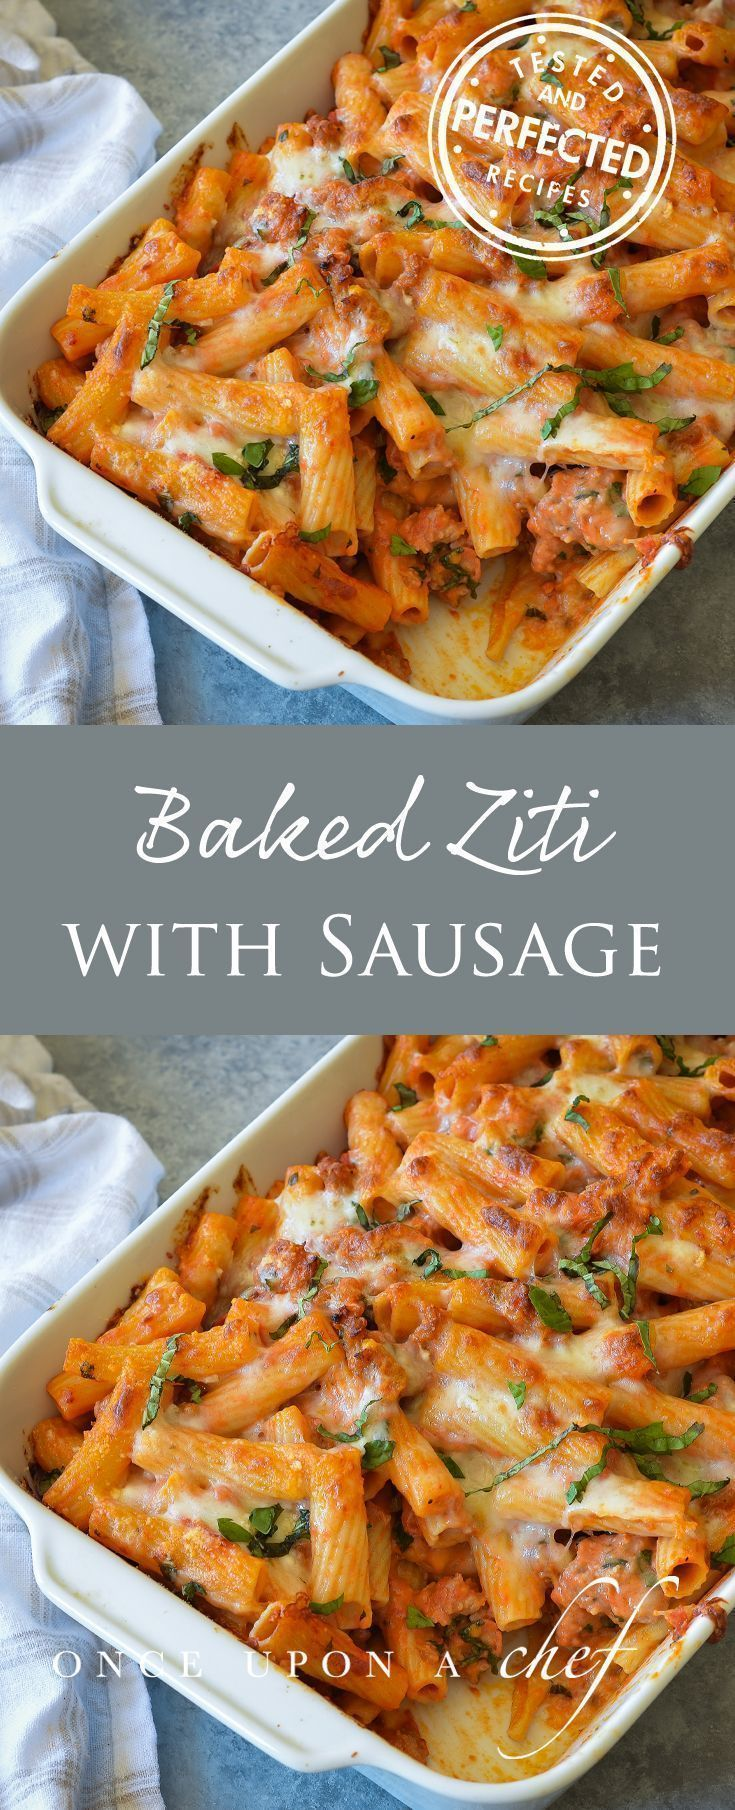 Baked Ziti with Sausage images